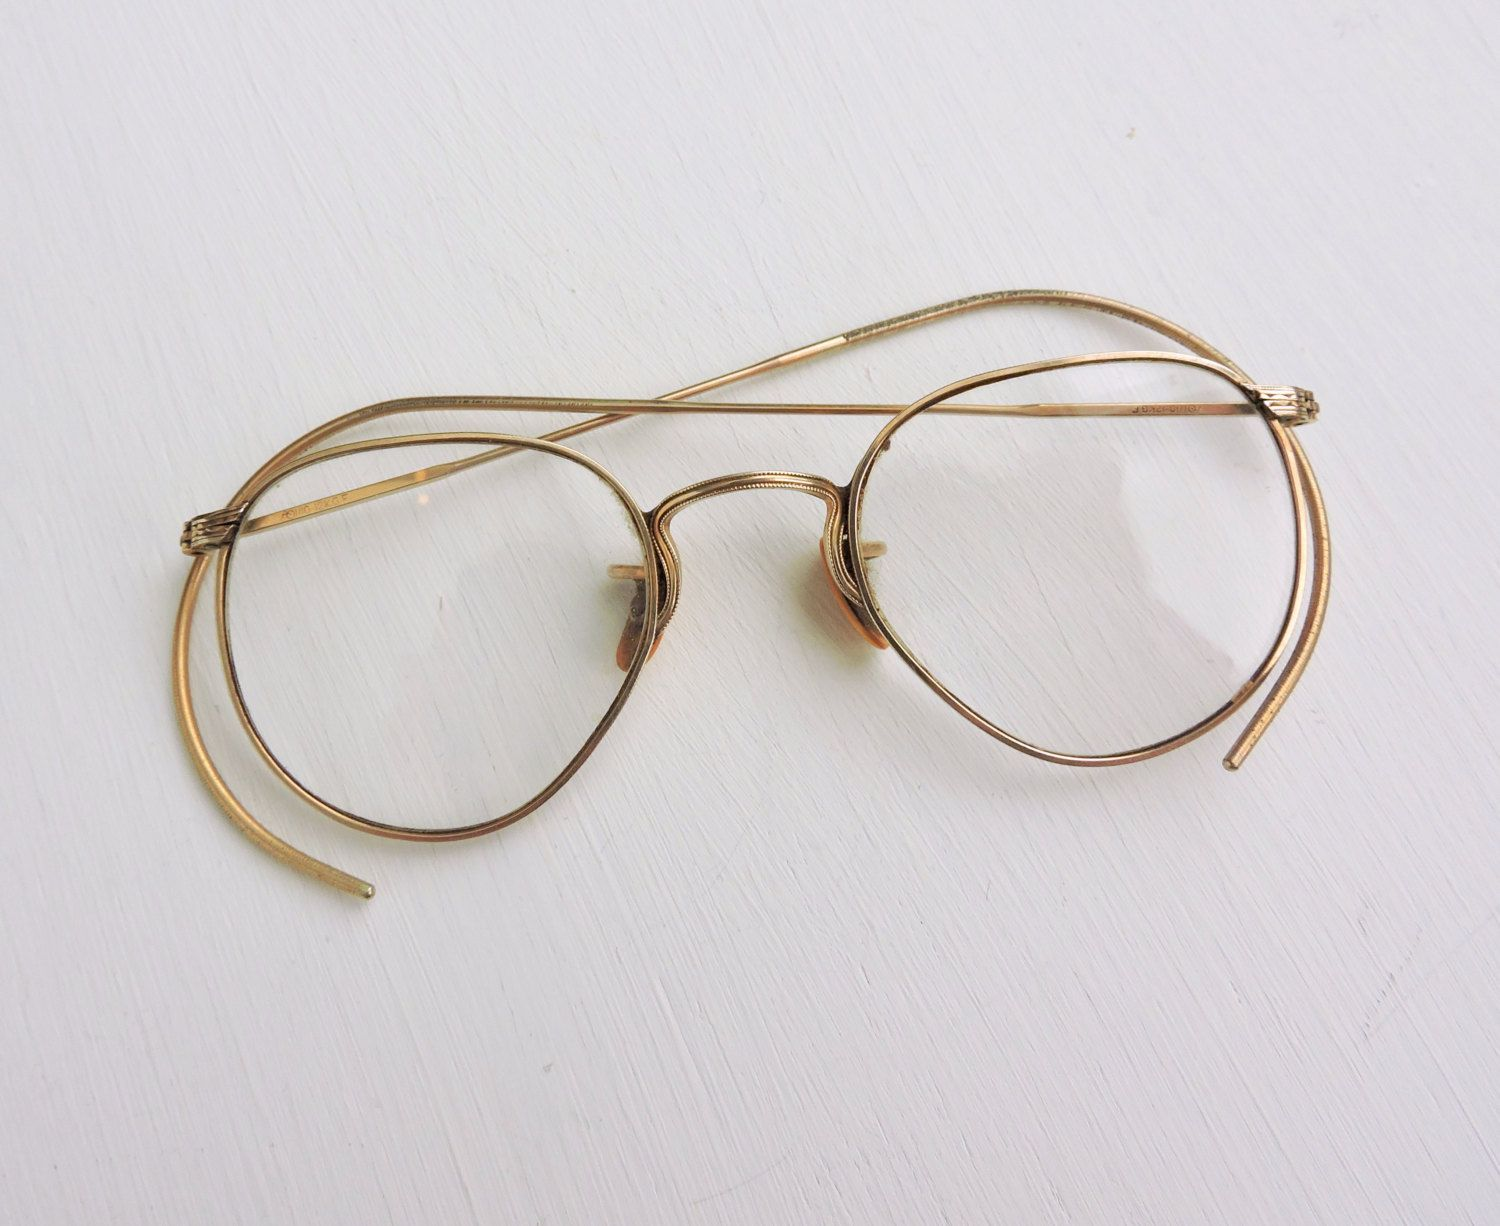 9619a2ff32bf Vintage Eyeglasses, 12K Gold Filled Ful-Vue, AO American Optical, Spectacles,  Round Wired Rimmed Eyewear, Bifocals, Eye Glasses, Brown Case by ...